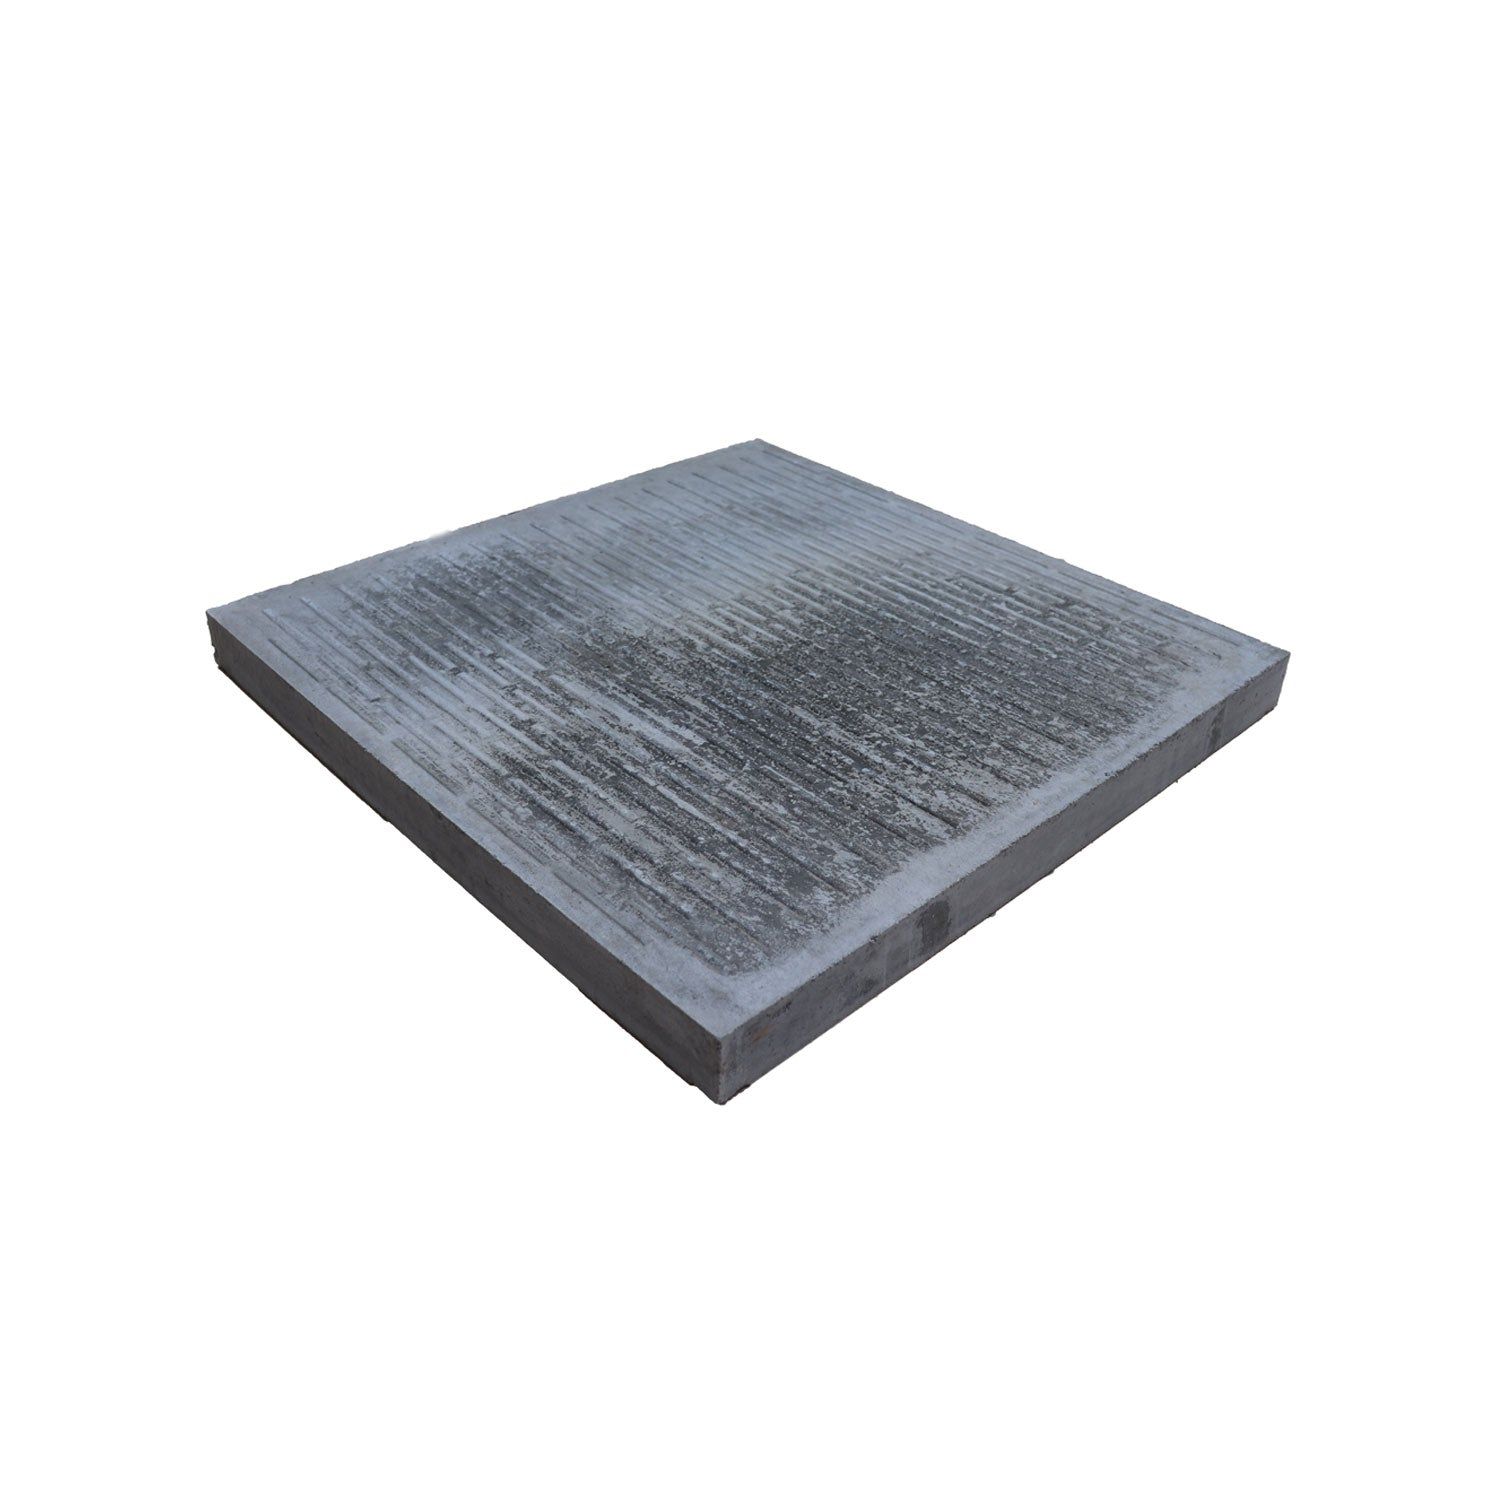 Barface Grey 600mm x 600mm x 50mm